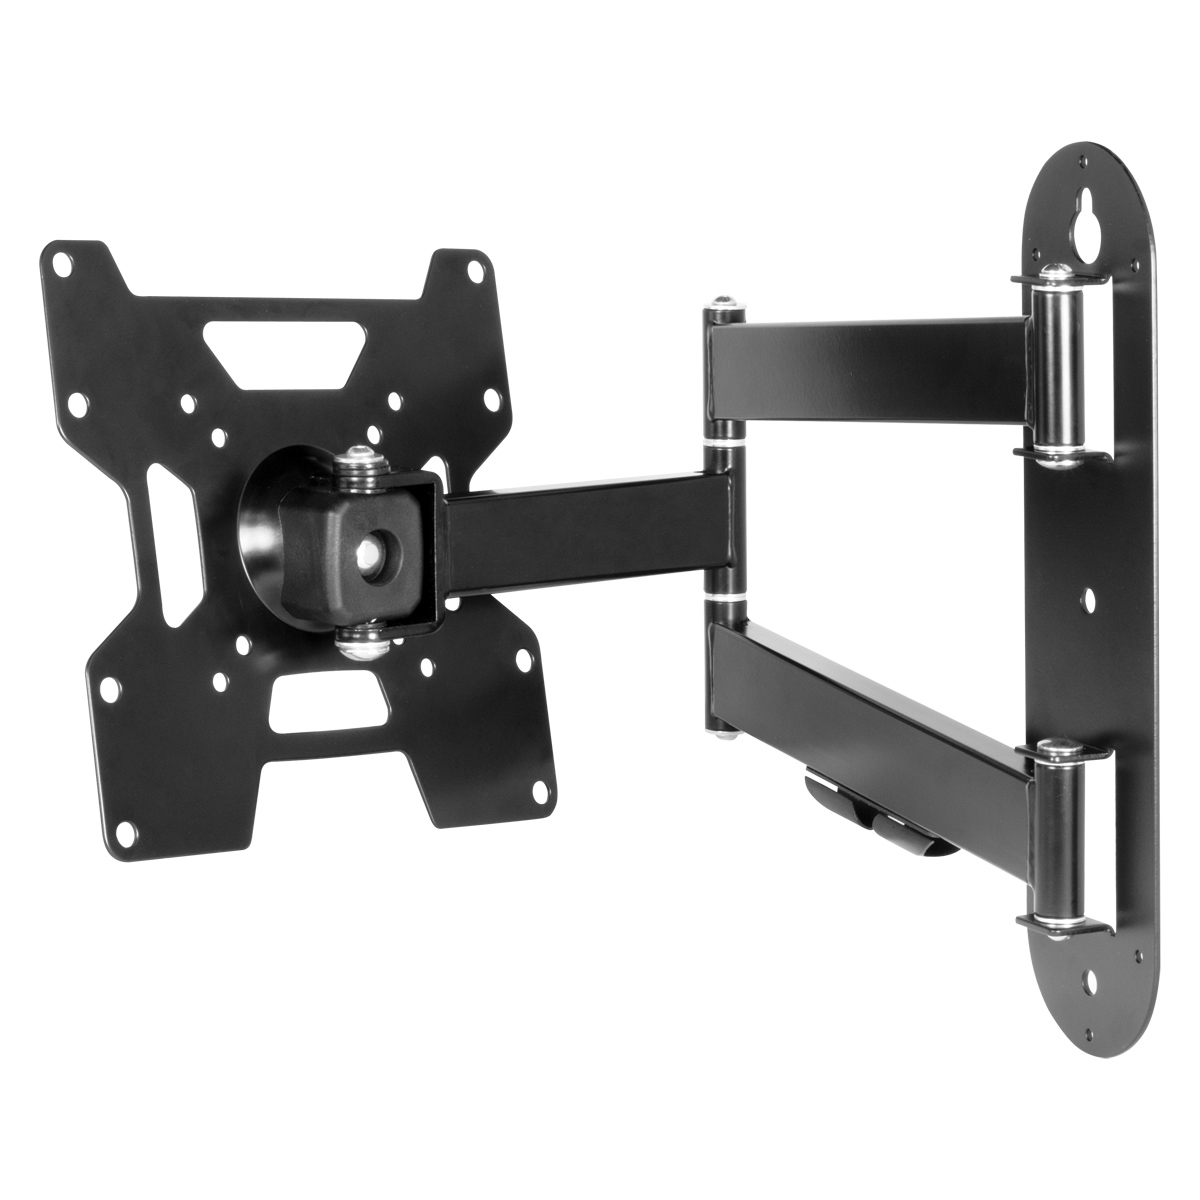 Full-Motion TV Wall Mount ARCTIC TV Flex S Tiltable